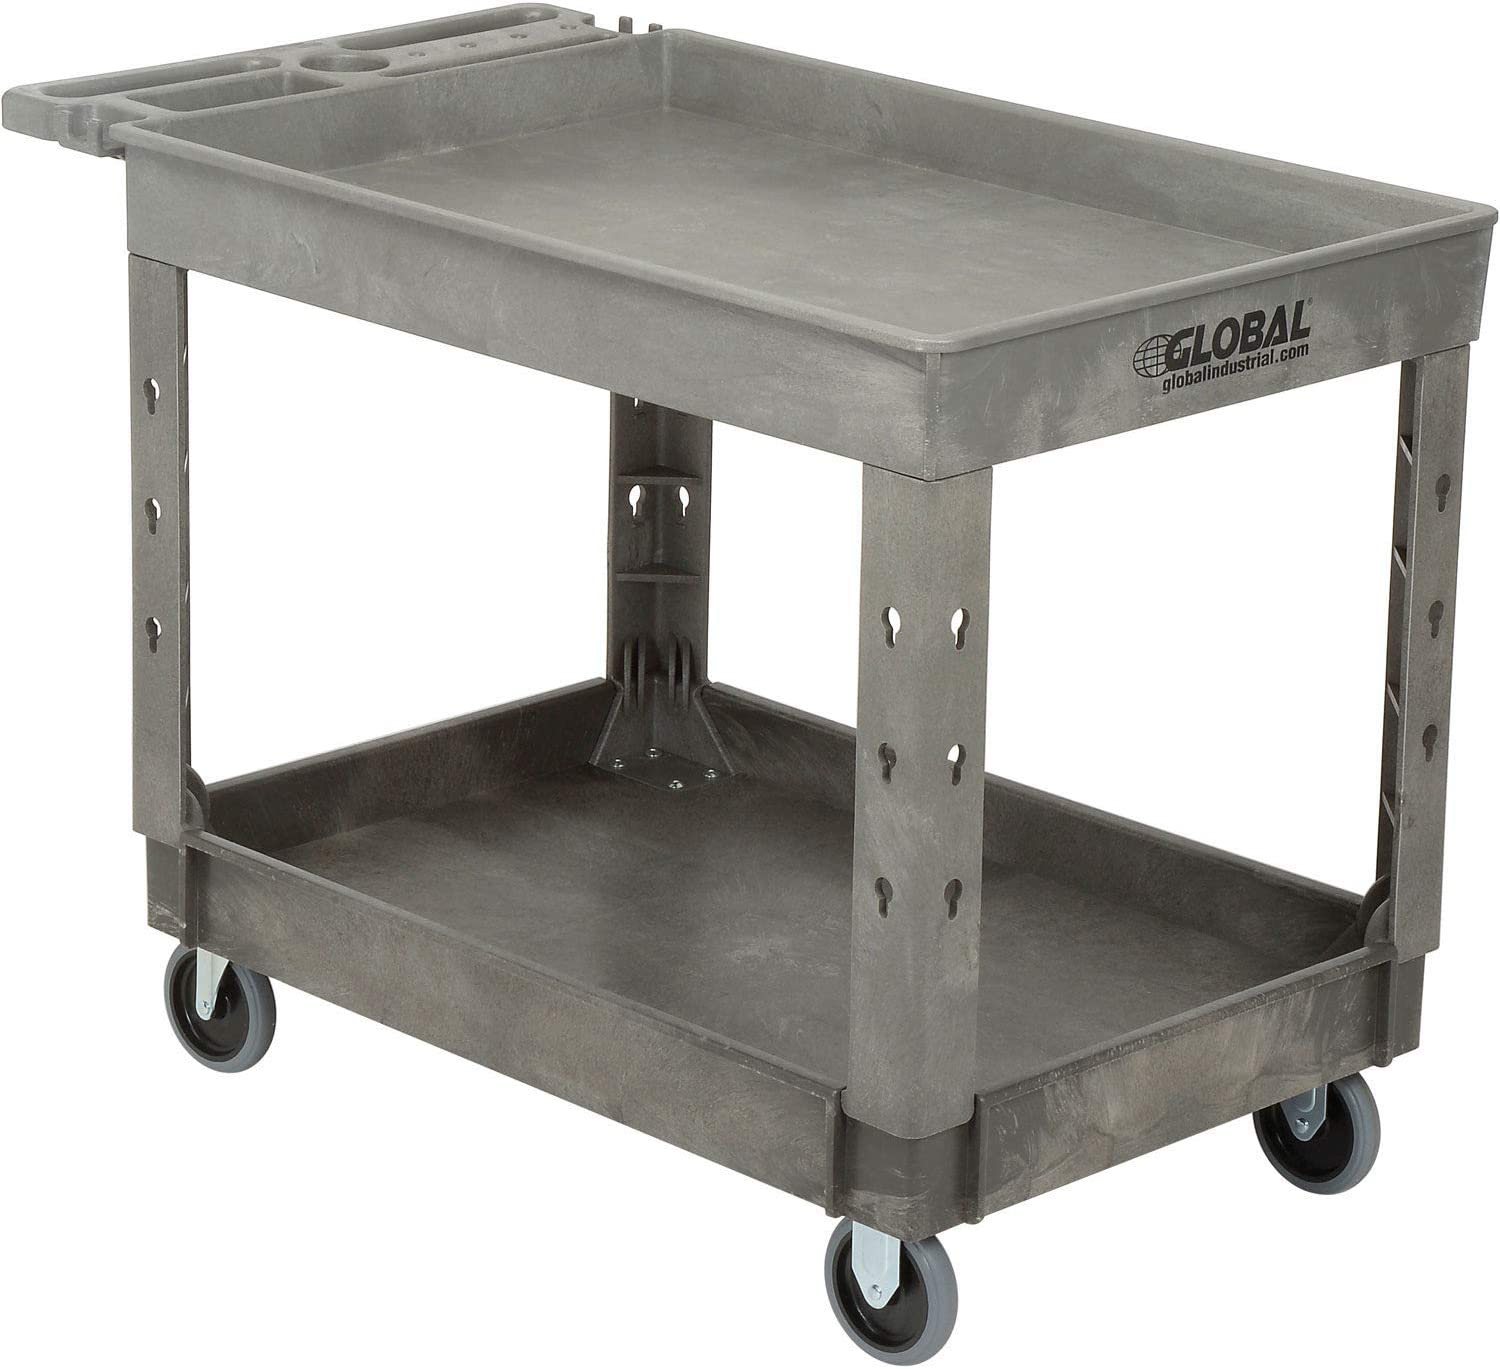 Plastic 2 Tray Shelf Service Utility Cart, 44 x 25-1 2 , 5 Rubber Casters, Lot of 1